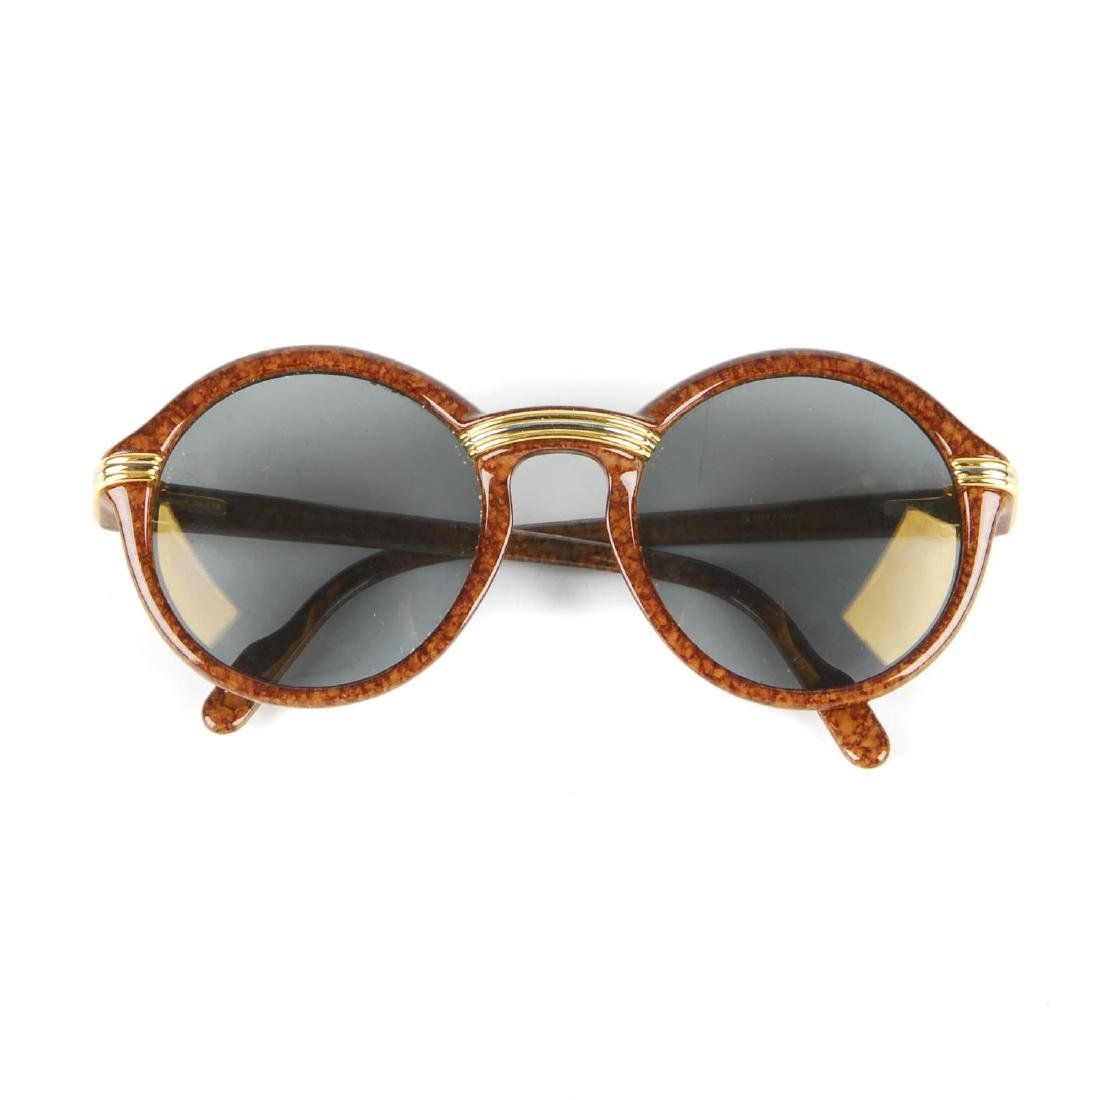 CARTIER - a pair of Cabriolet sunglasses. Designed with